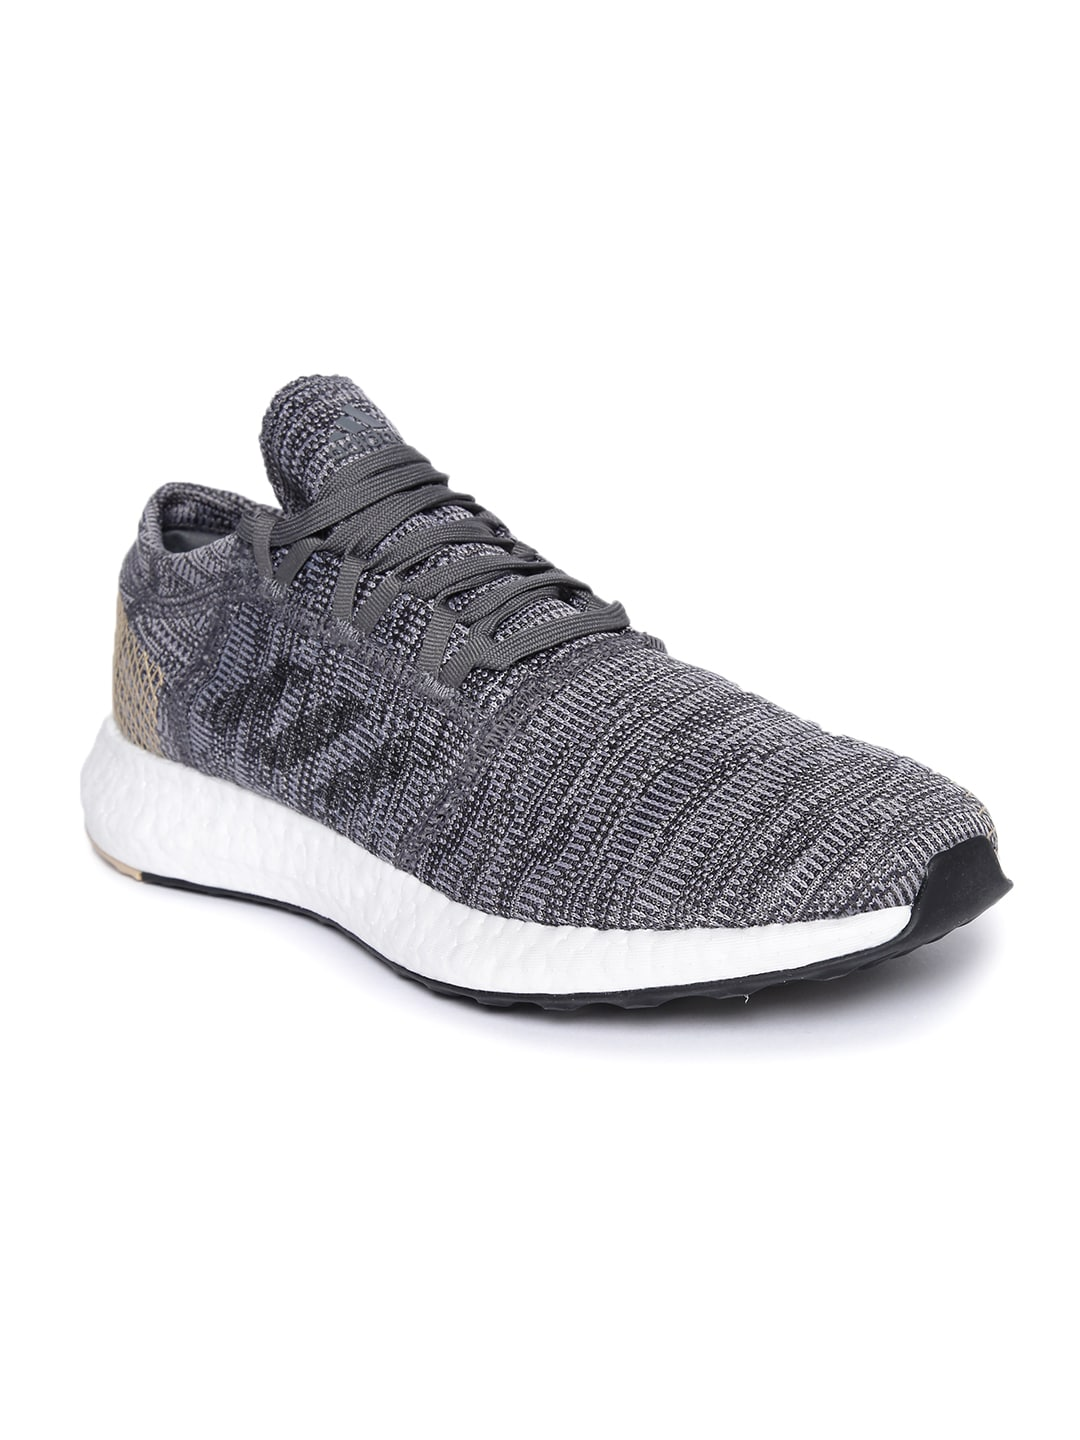 c282ae32f Adidas Pureboost Zg Prime Grey Running Shoes for Men online in India ...